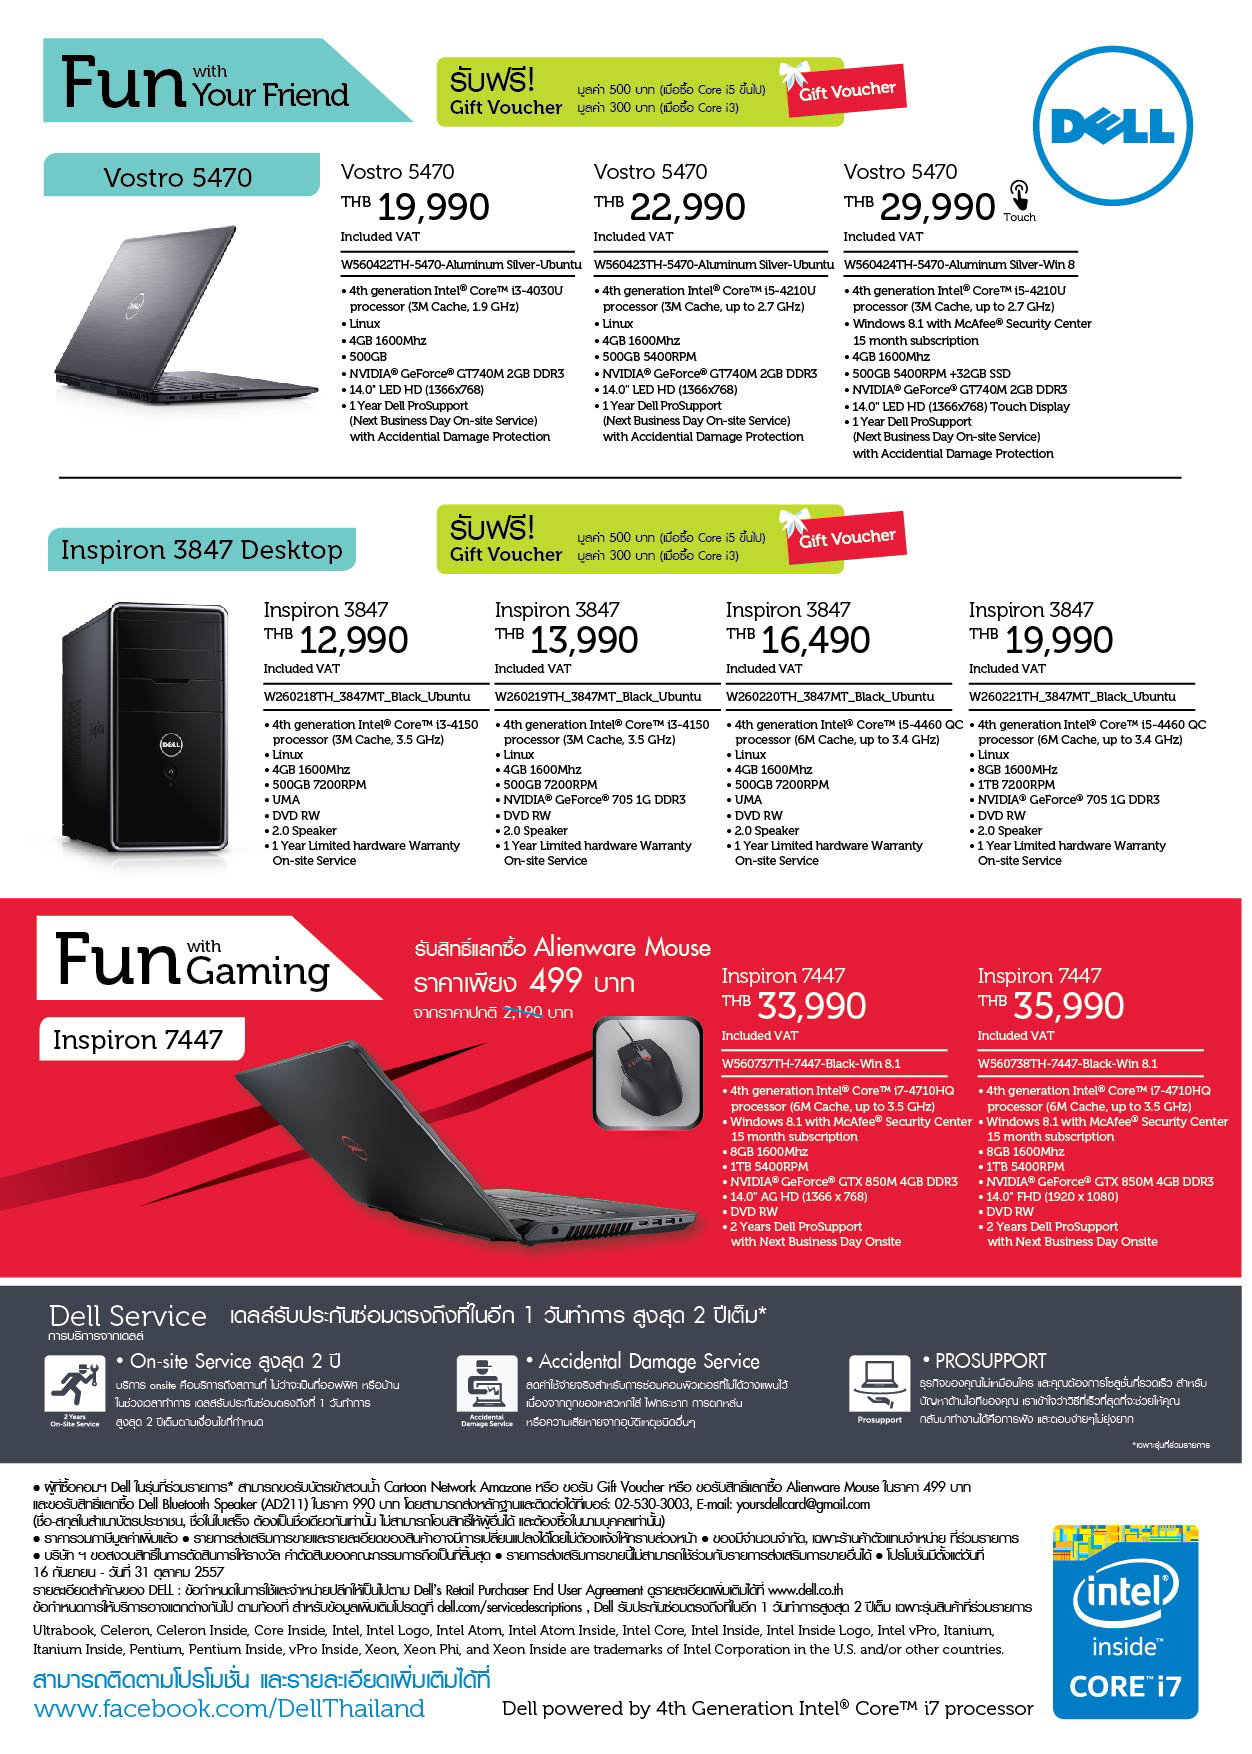 More Dell More Deal AD 2